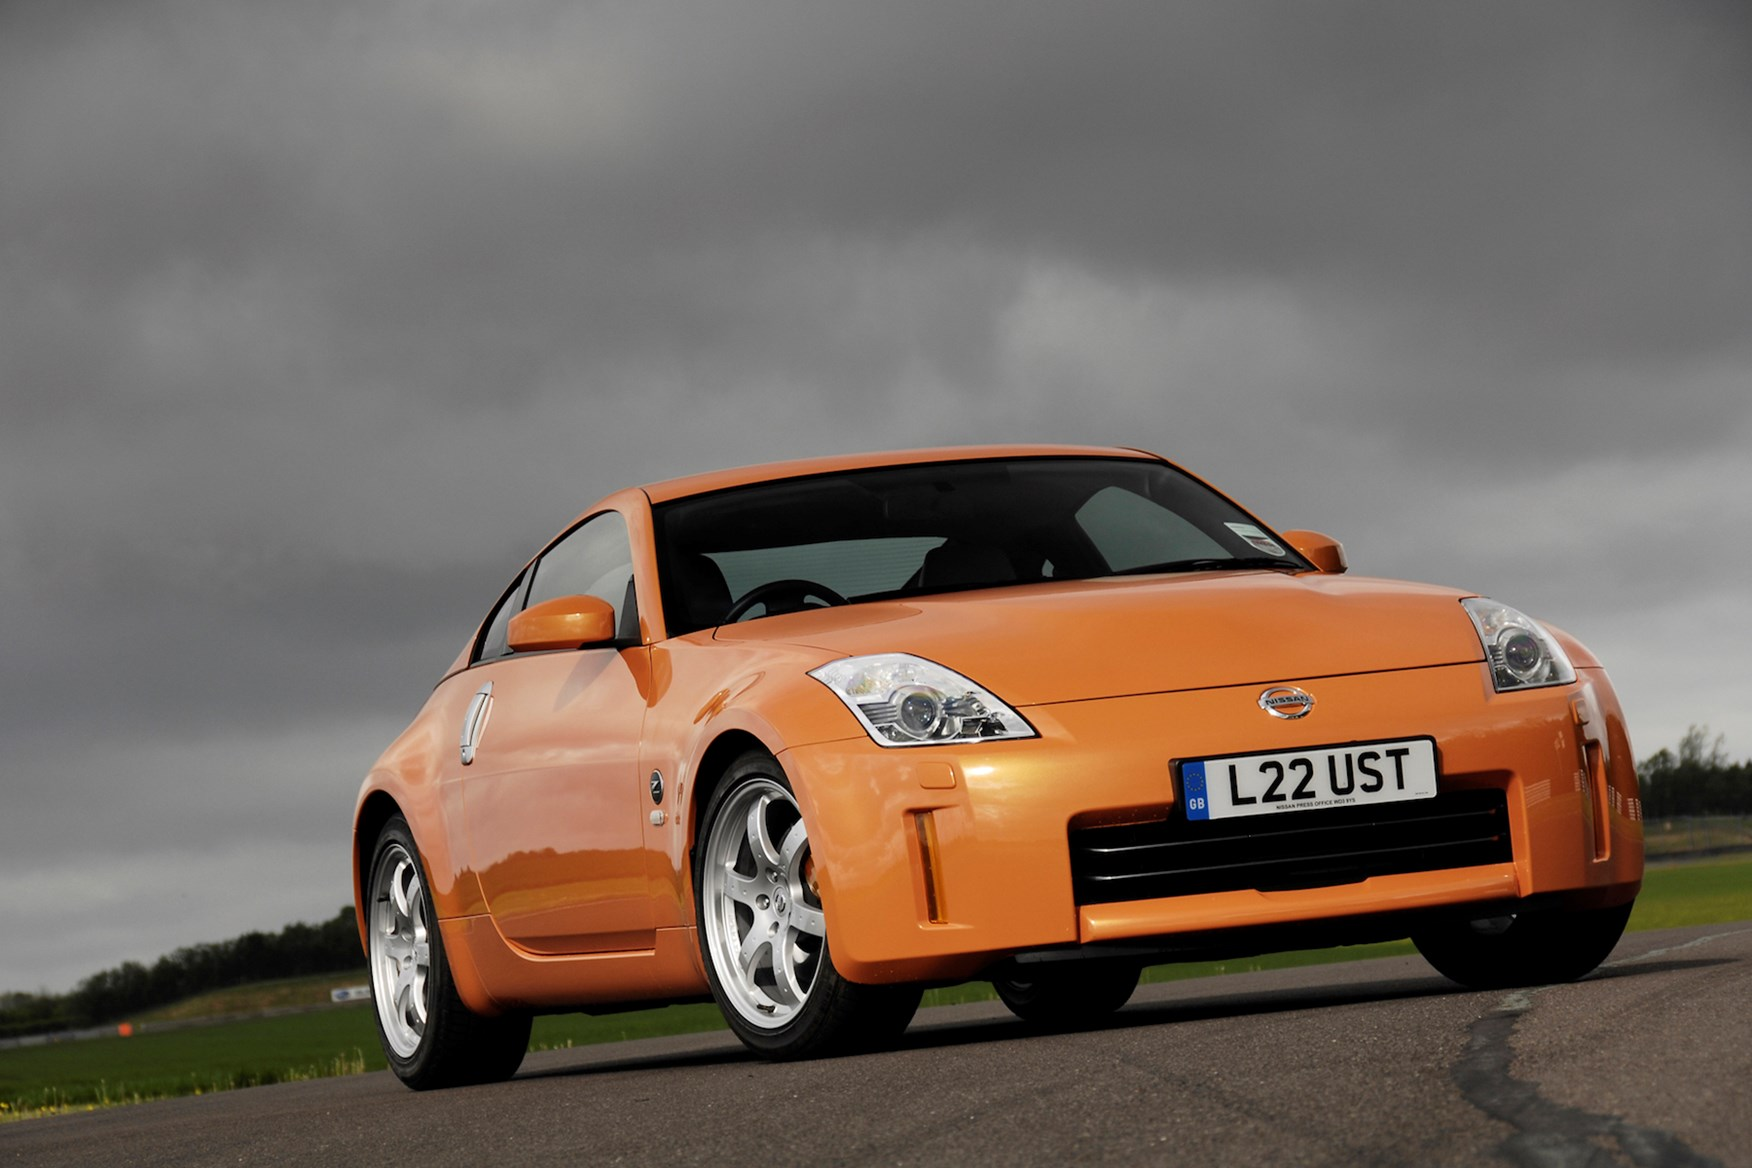 The Nissan 350Z Coupe